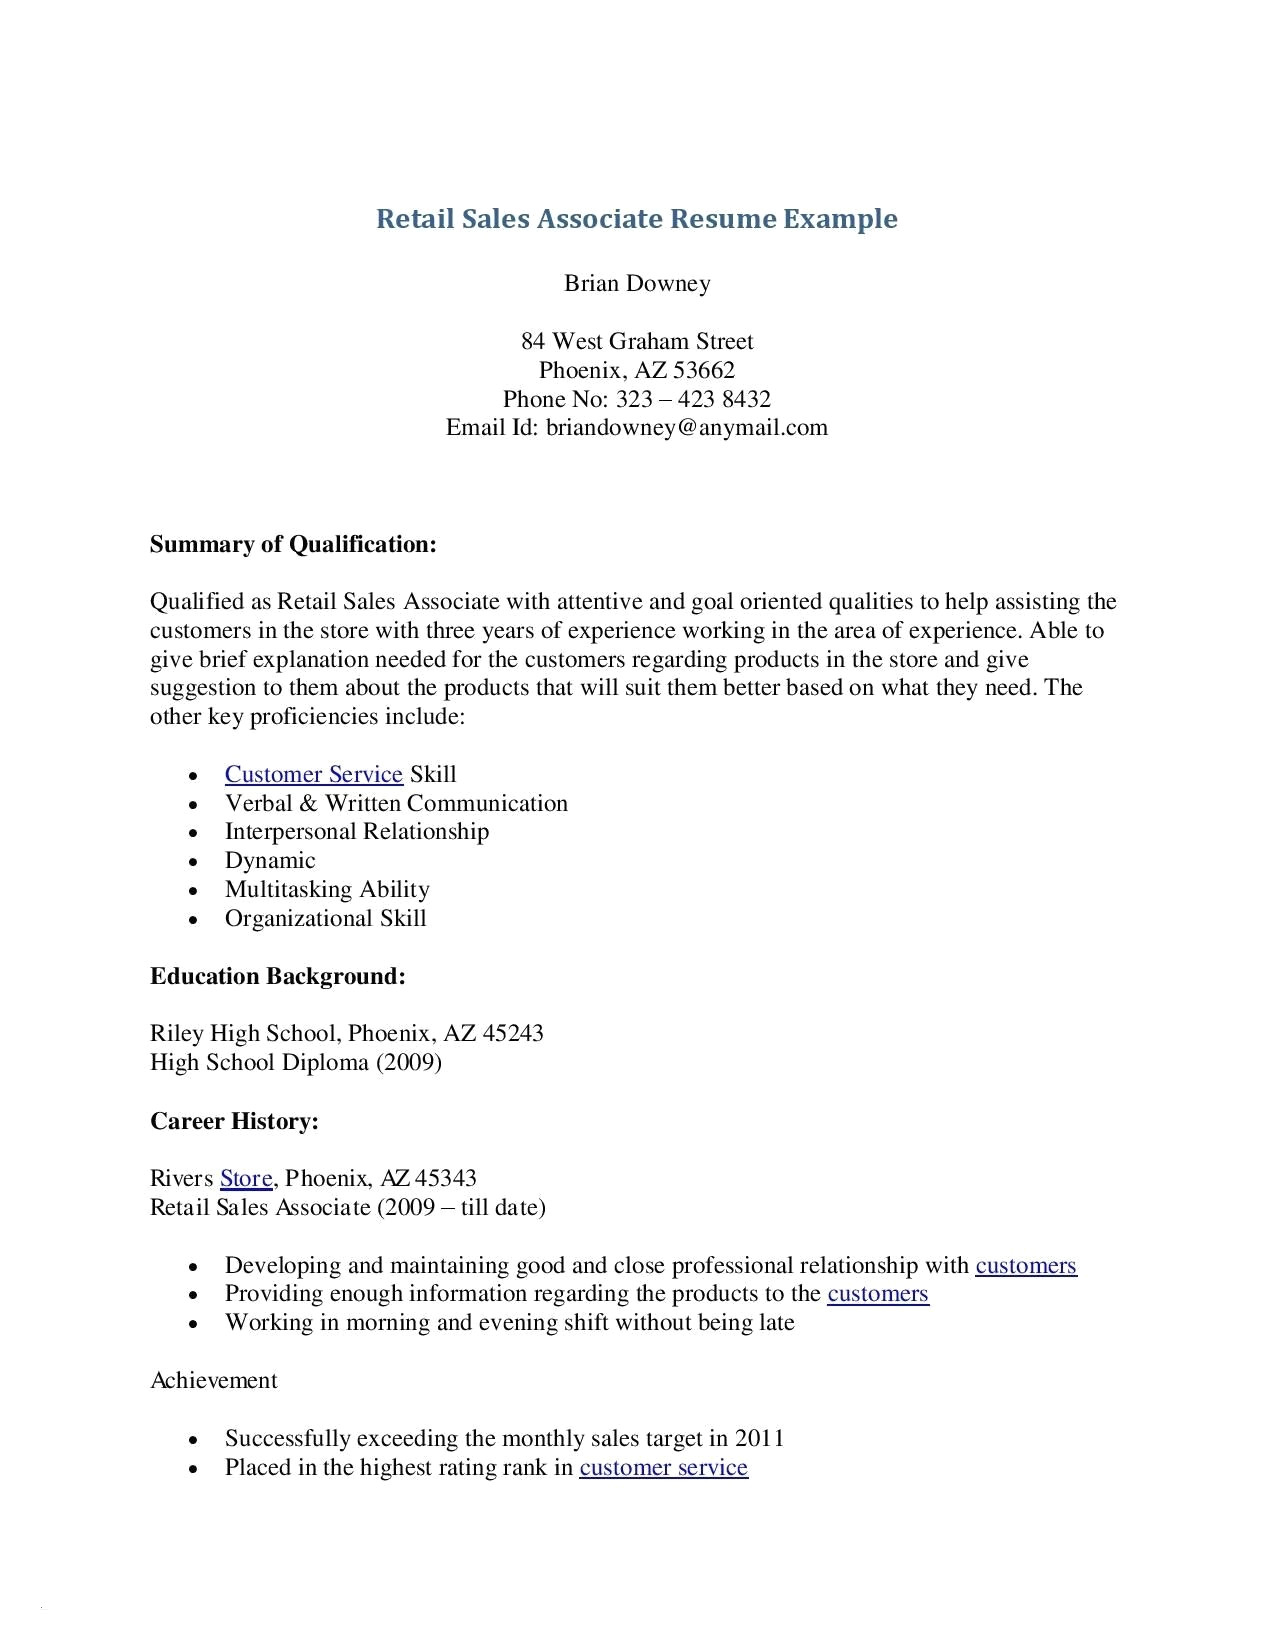 Retail Sales associate Resume Template - 39 Design Resume for Retail Store